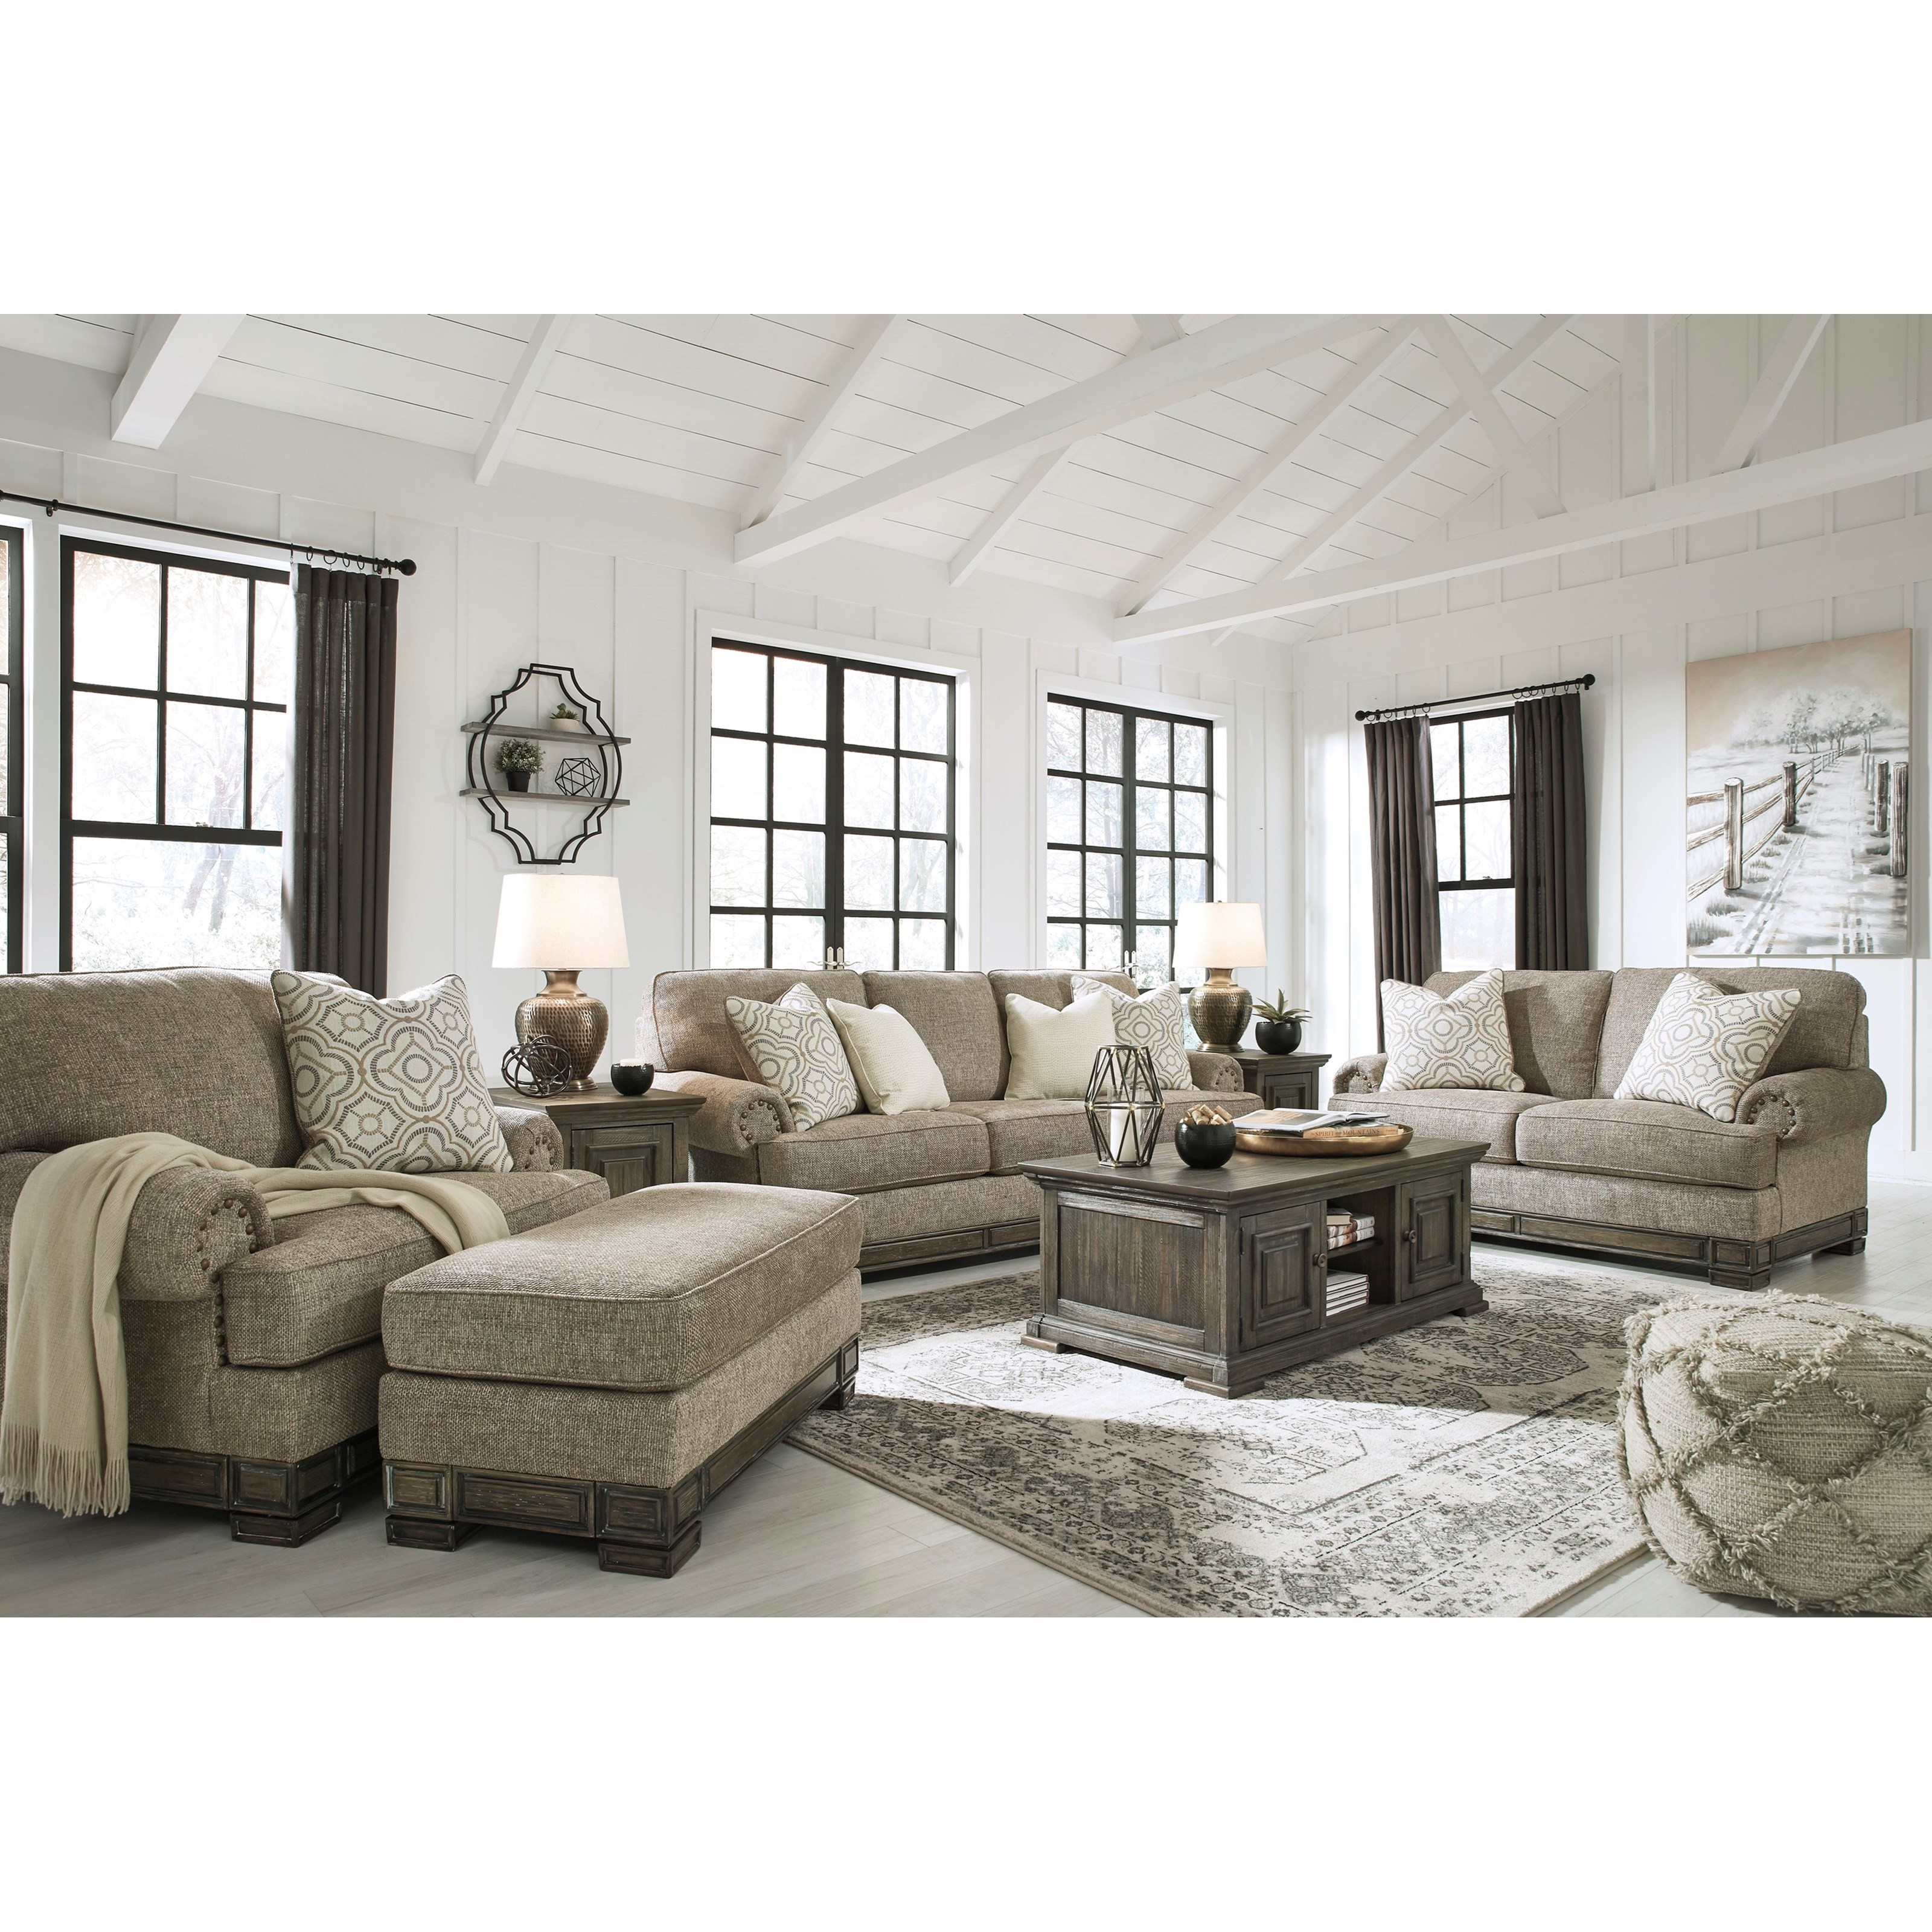 Einsgrove Stationary Living Room Group by Signature Design by Ashley at Northeast Factory Direct